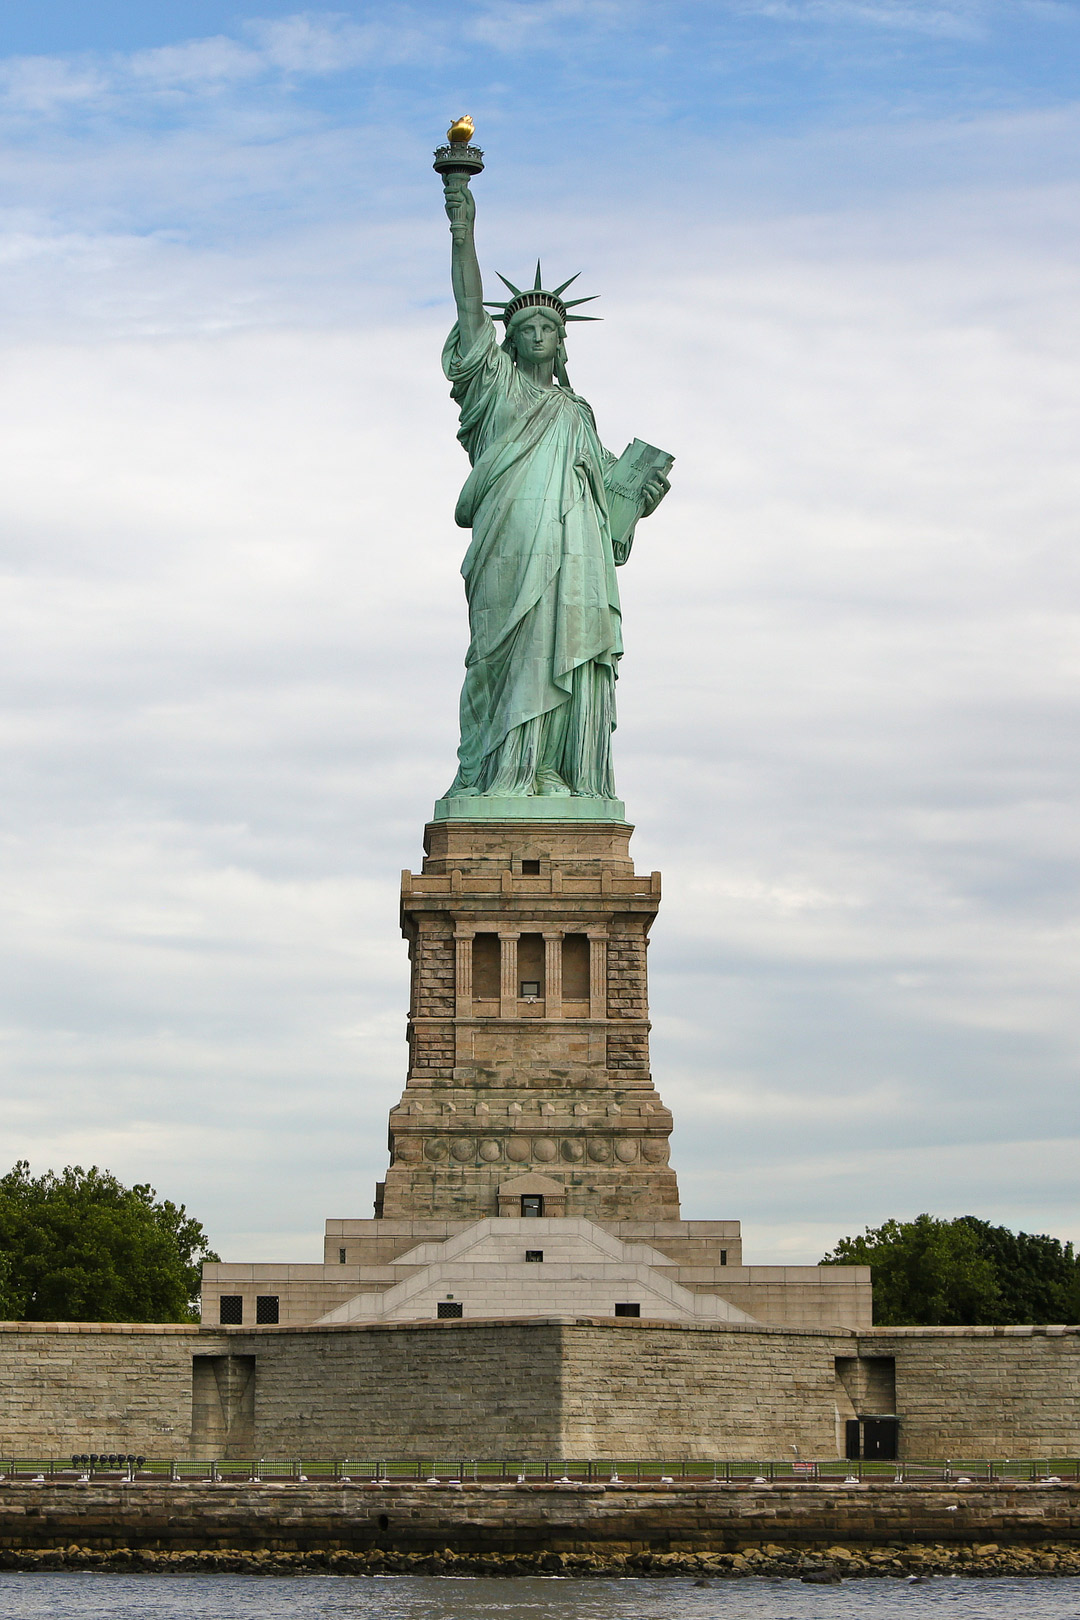 Looking for the best national parks in new york state? Click through and save this pin to check out our comprehensive guide to the 11 national parks in new york city. These NYC landmarks like the Statue of Liberty National Monument are spots you need to visit at least once in your life! We also include a list of other NYs parks, the best upstate new york parks, and best parks in nyc. // Local Adventurer #seeyourcity #nycgo #nyc #iloveny #newyork #newyorkcity #visittheusa